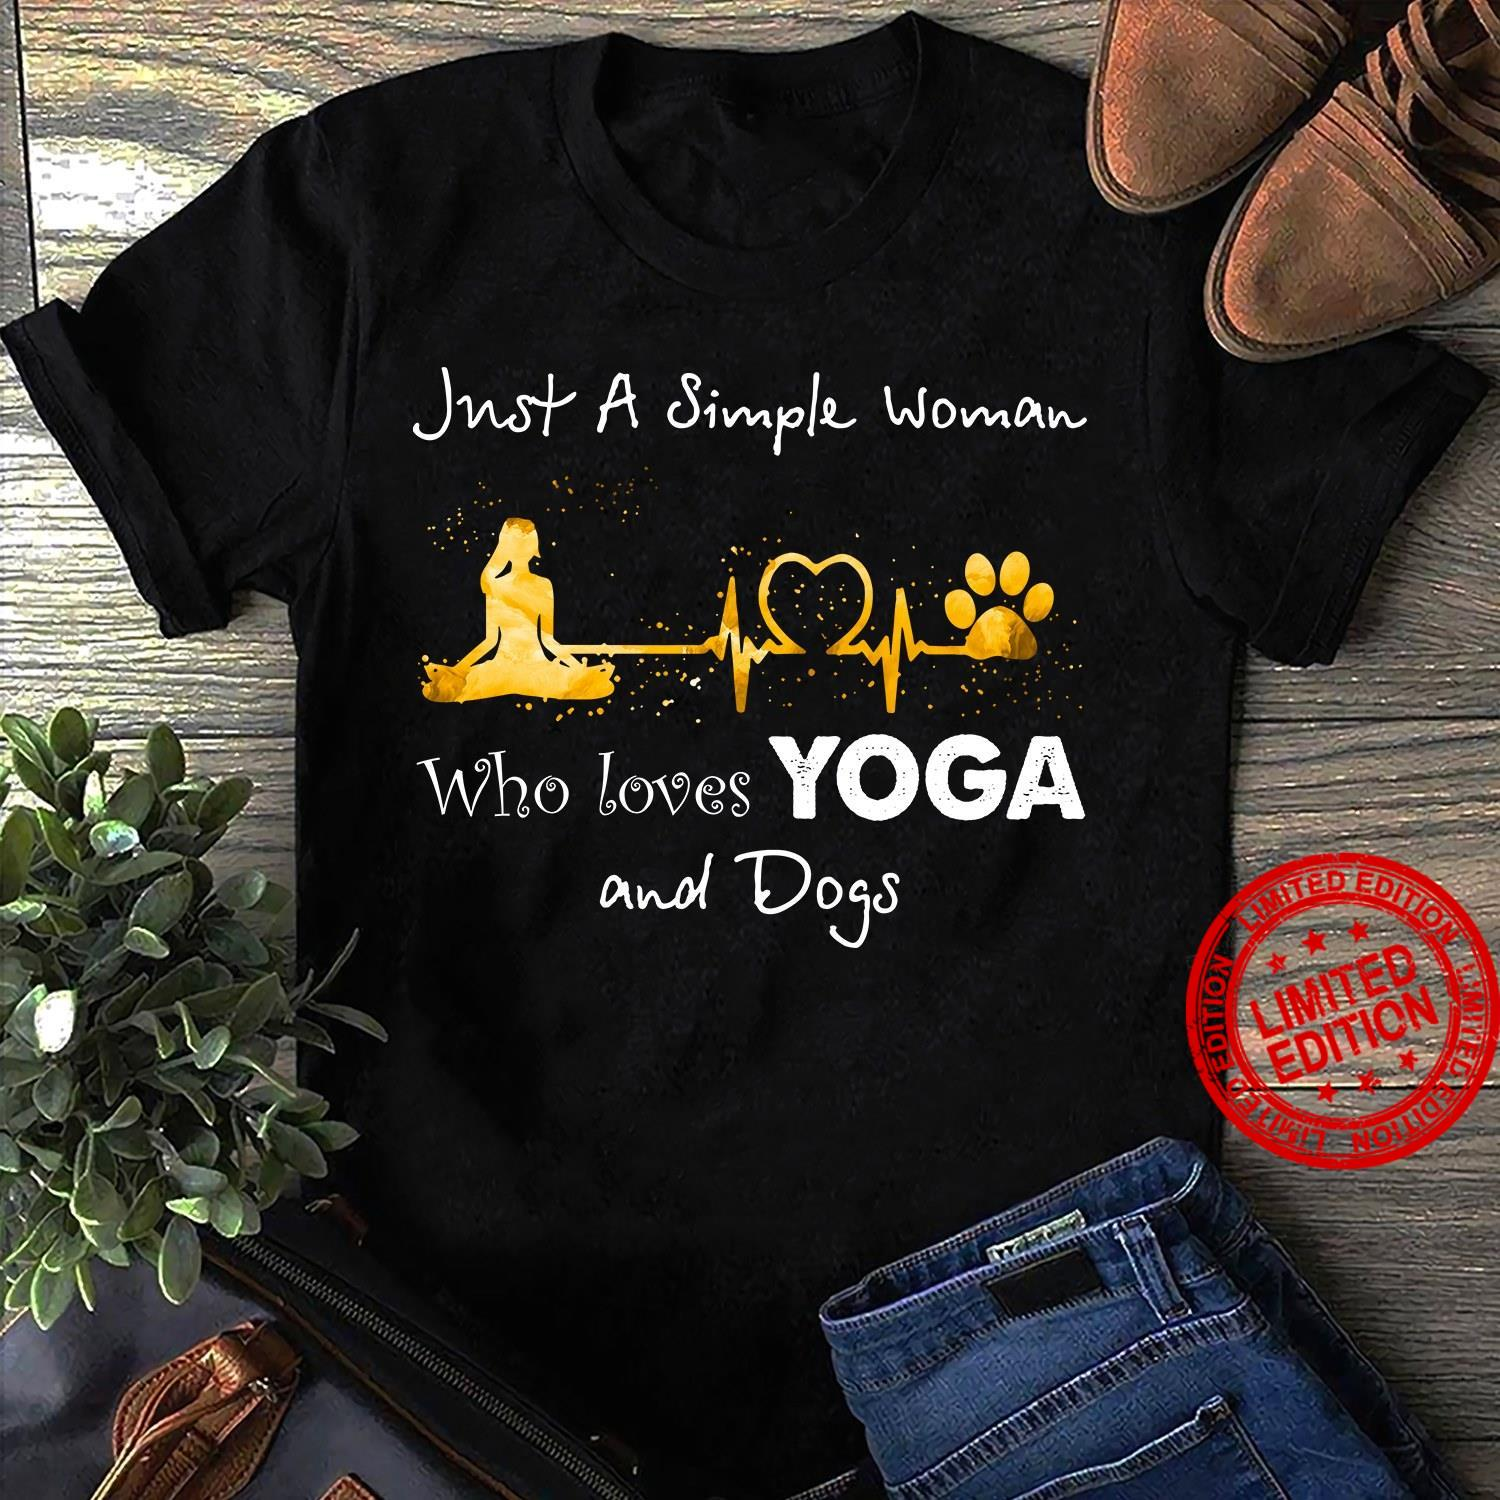 Just A Simple Woman Who Loves Yoga And Dogs Shirt